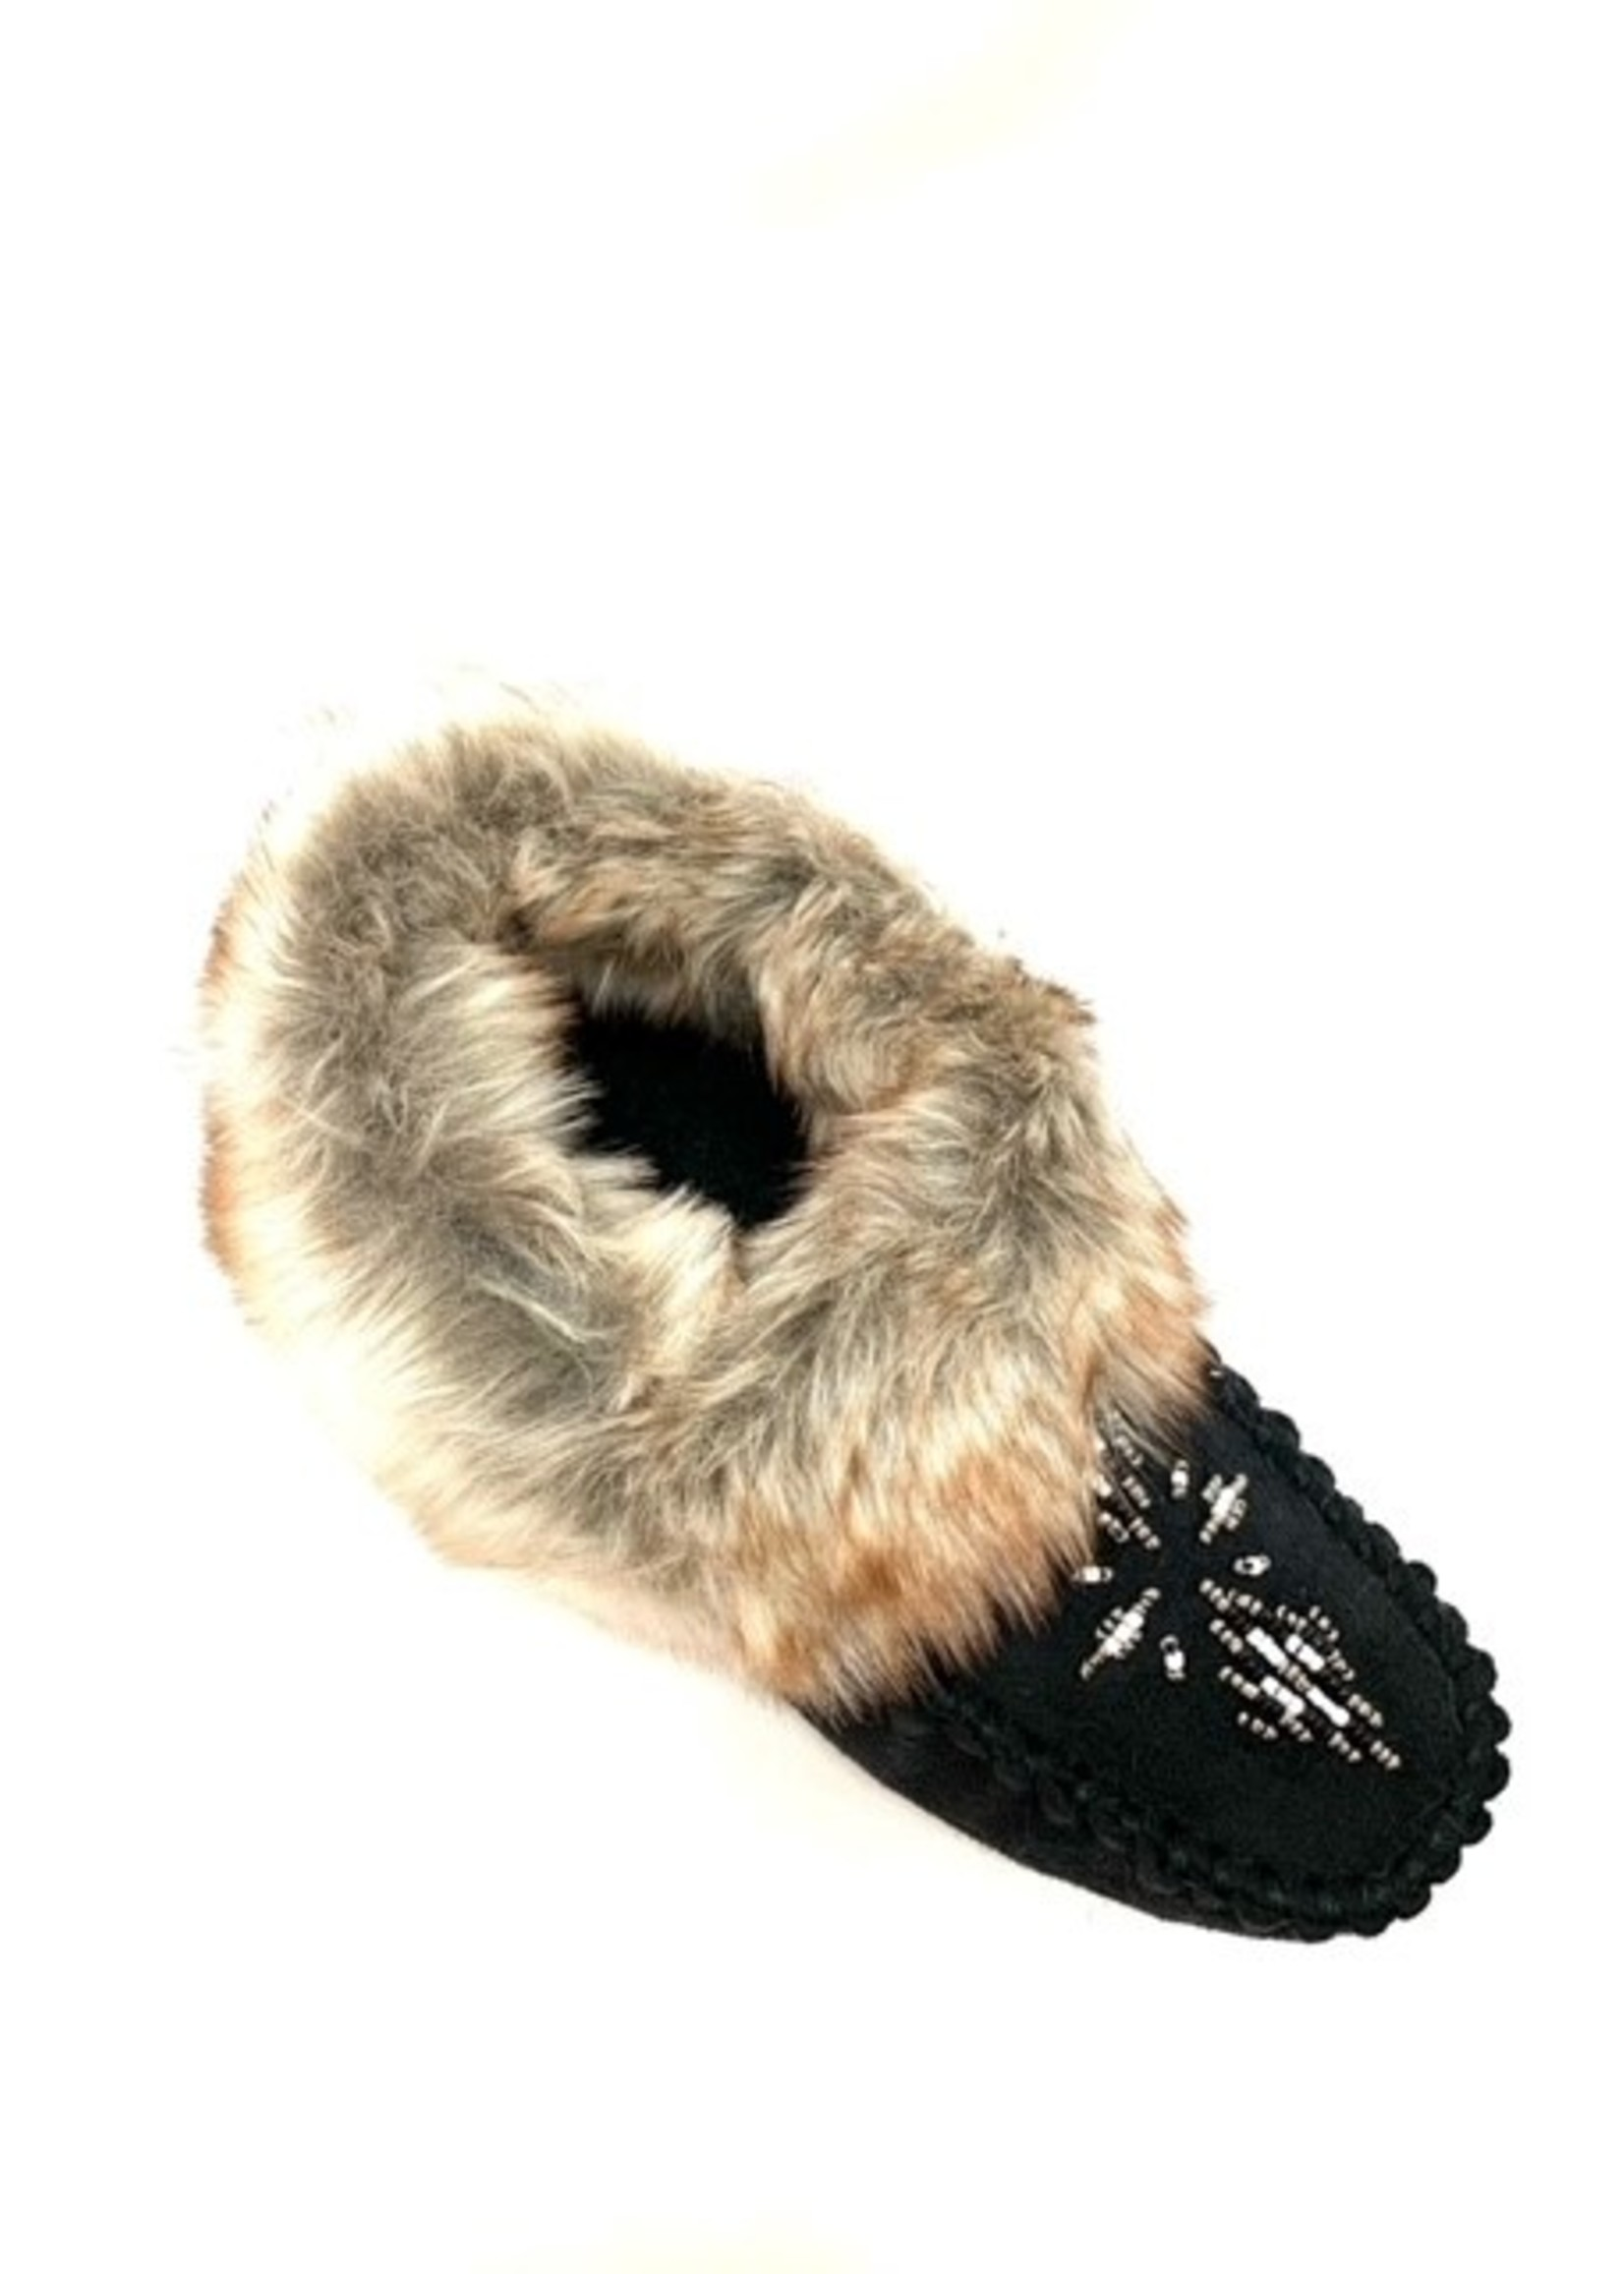 Frontier North ladies slippers, three colors available